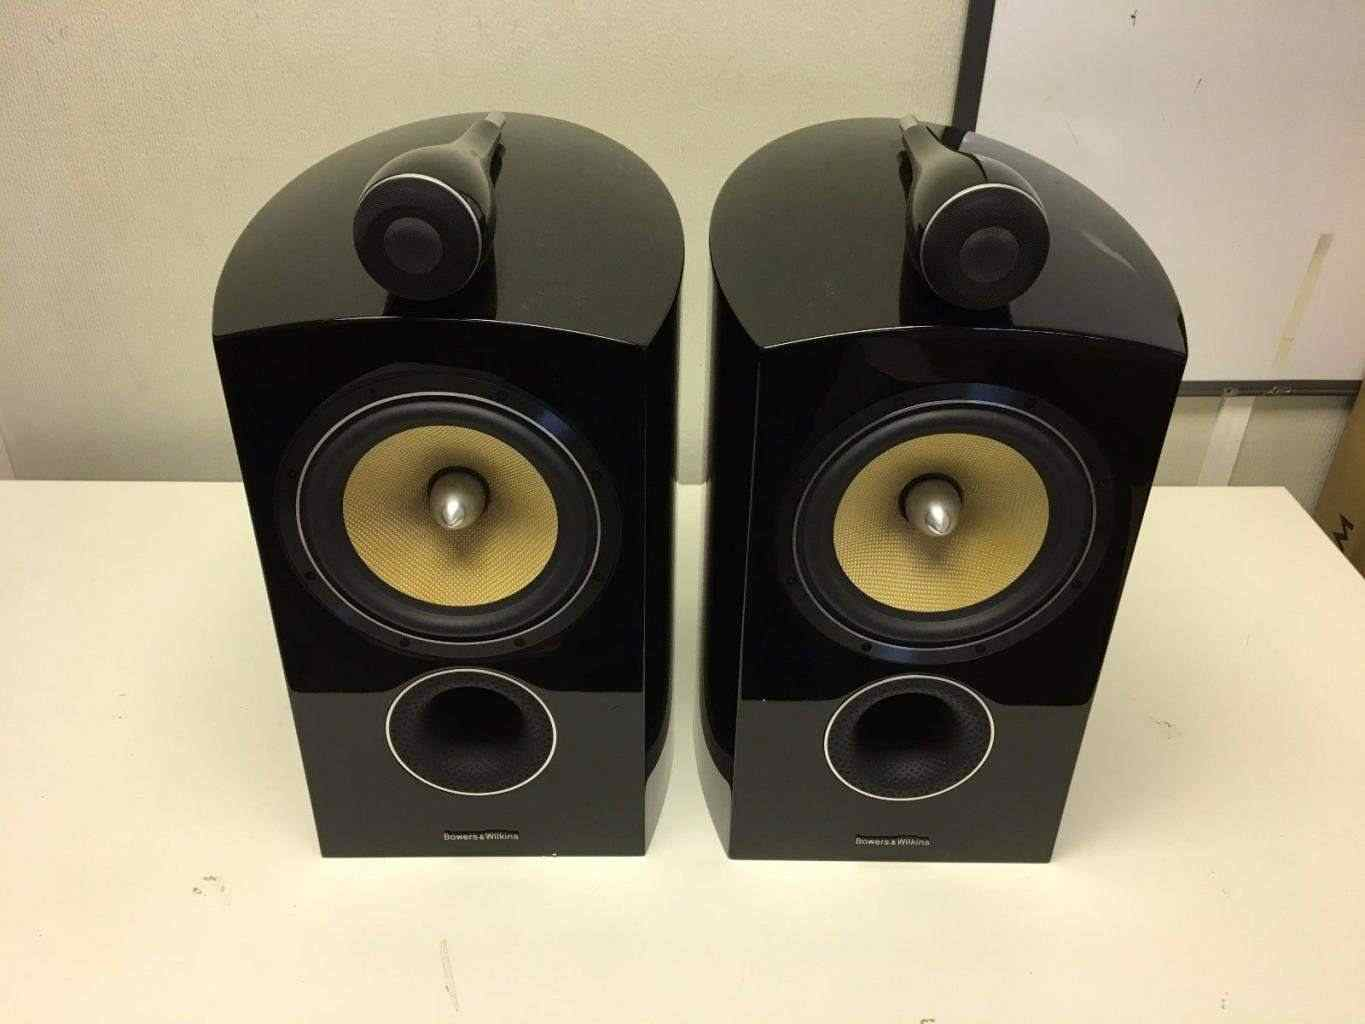 B&ampW Bowers and Wilkins 805 D2